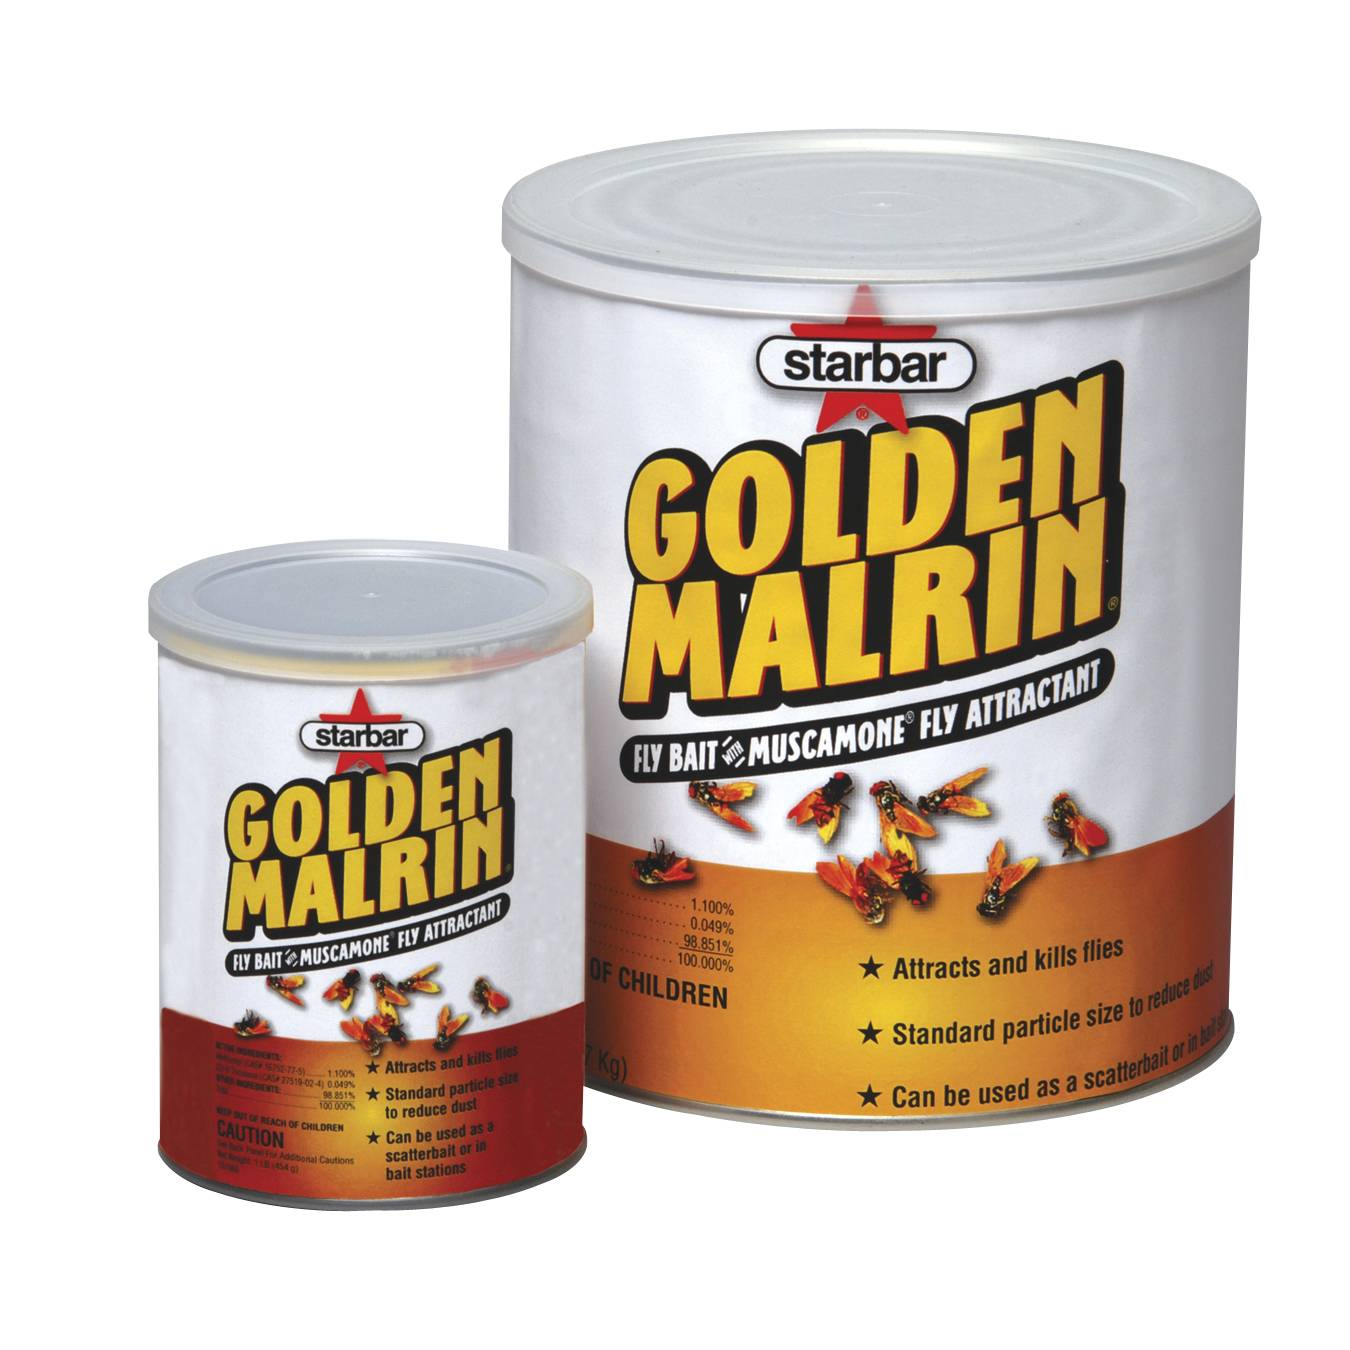 STARBAR Golden Malrin Fly Bait